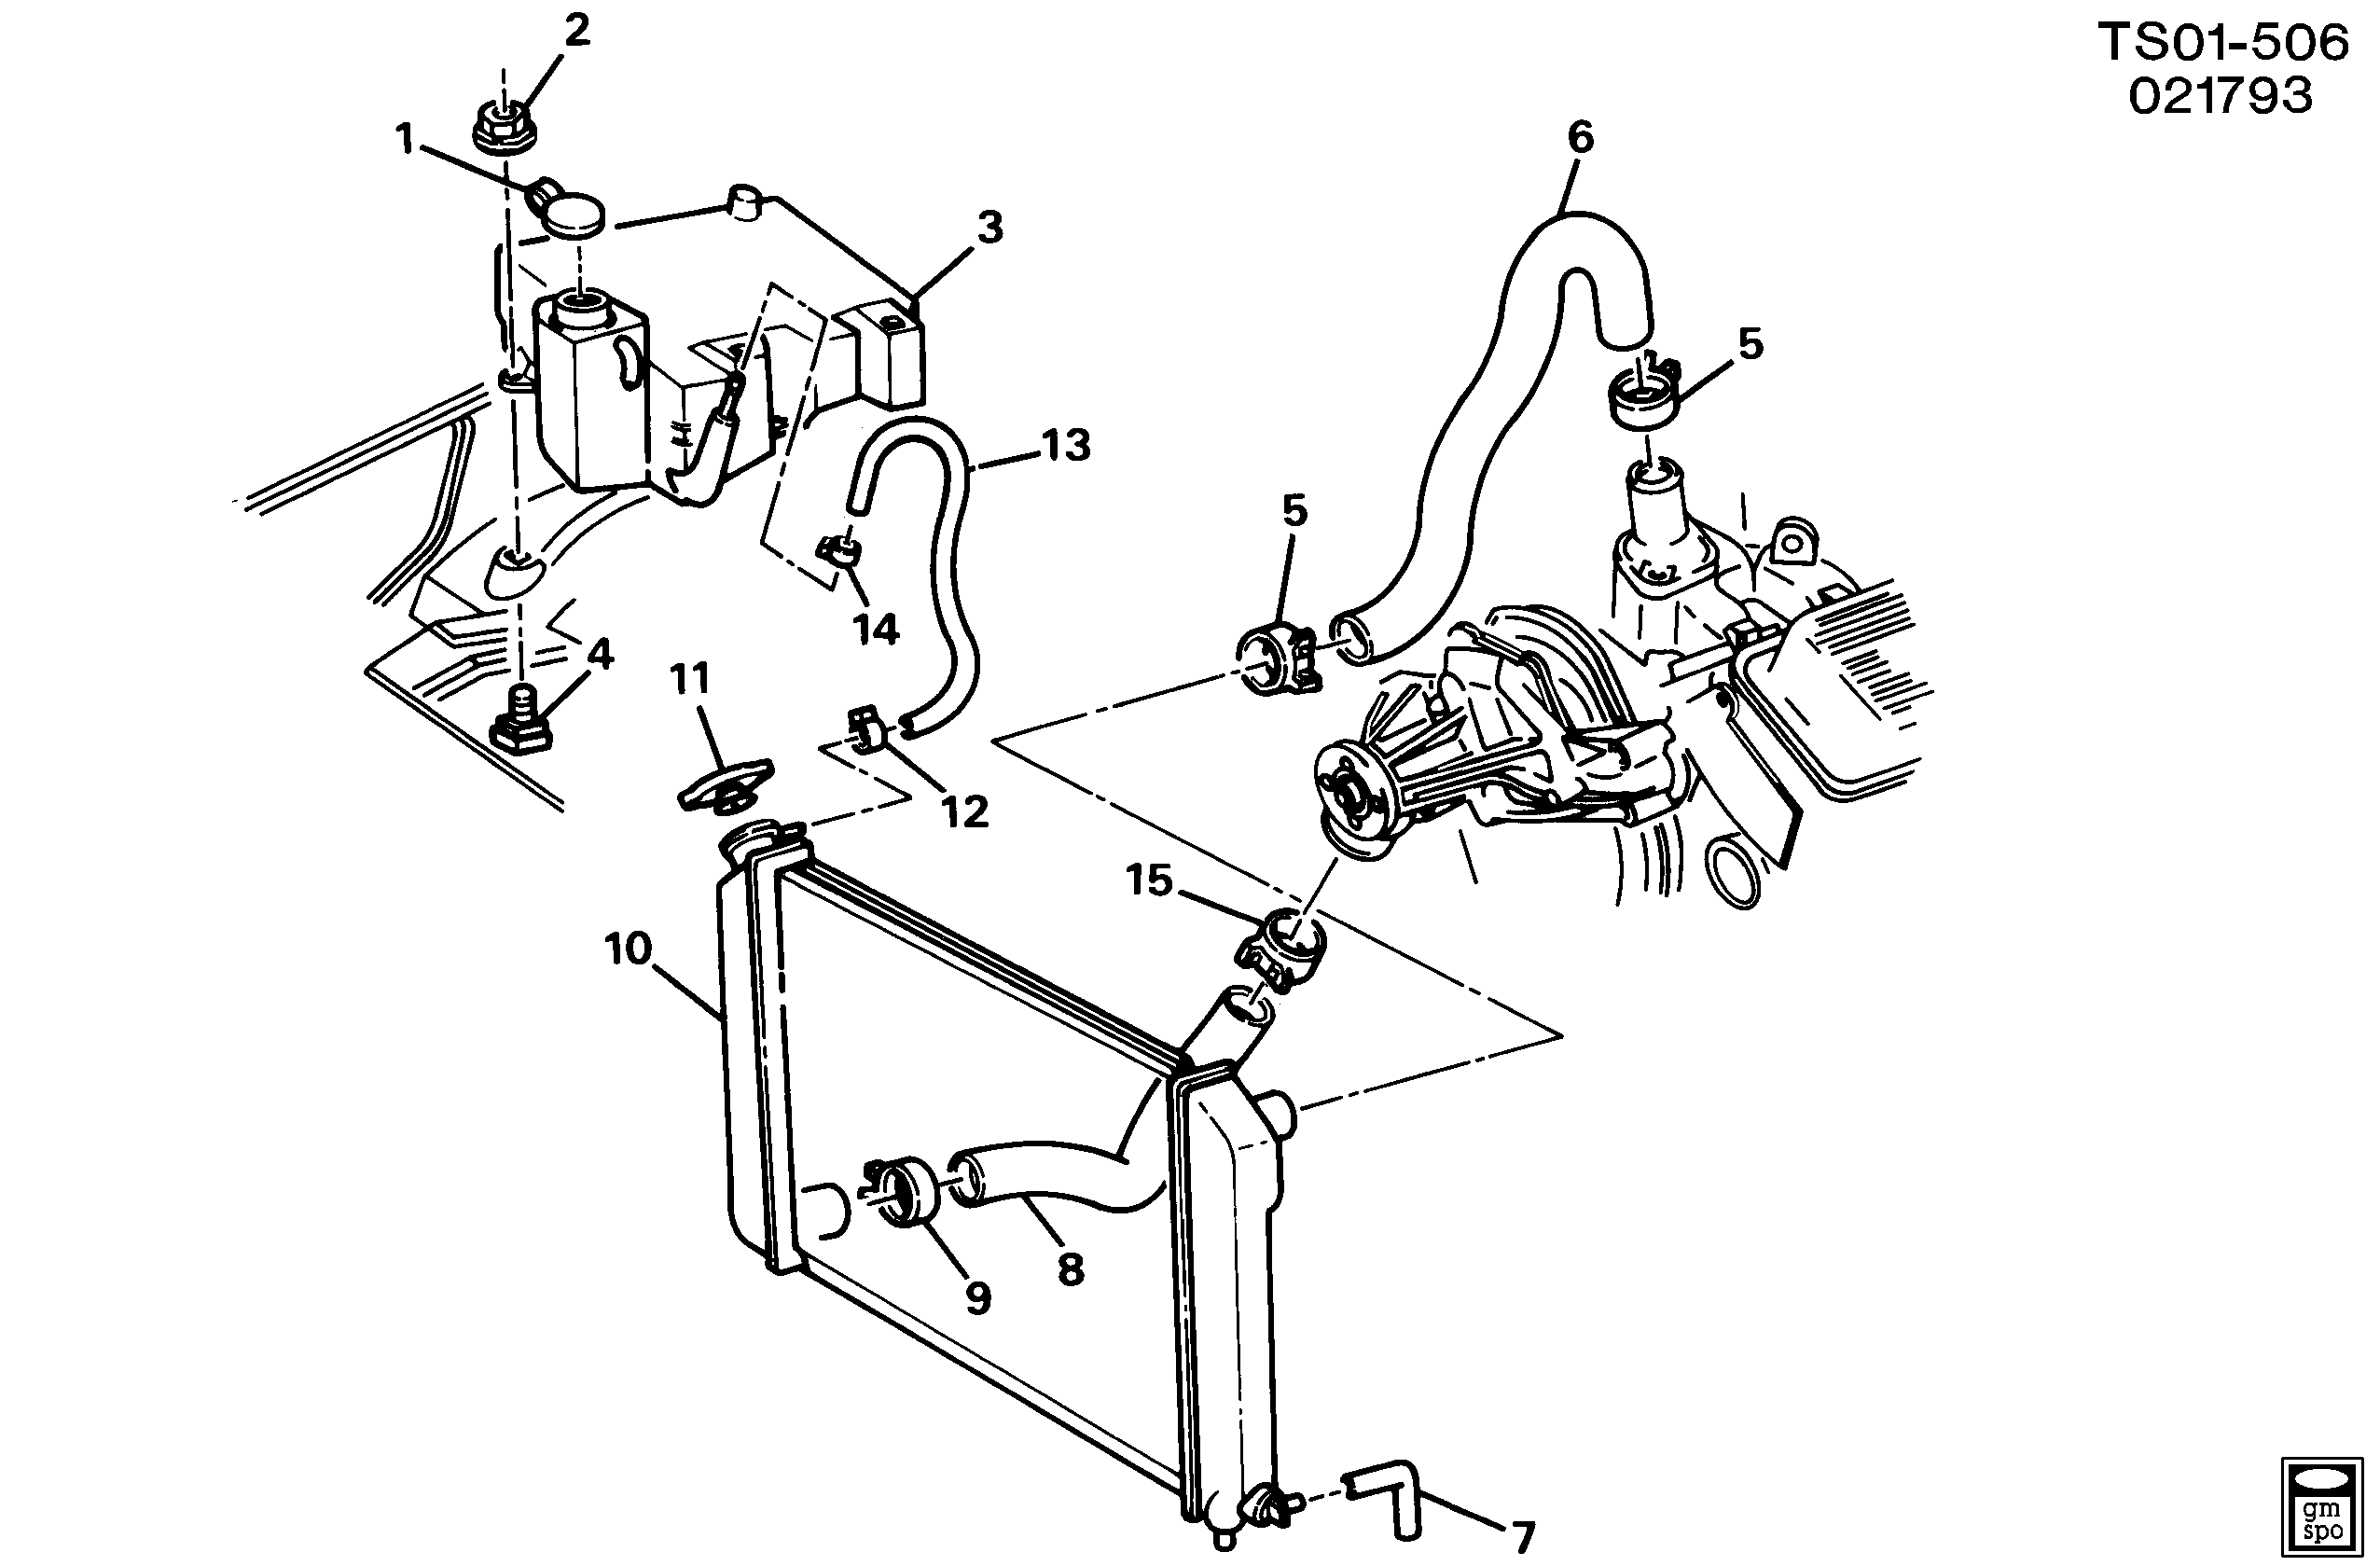 Gm 43 Engine Cooling System Diagram Trusted Wiring Diagrams Coolant Gmc Jimmy 4wd St Lb4 4 3zl35 3w U003e Epc Chevy Silverado